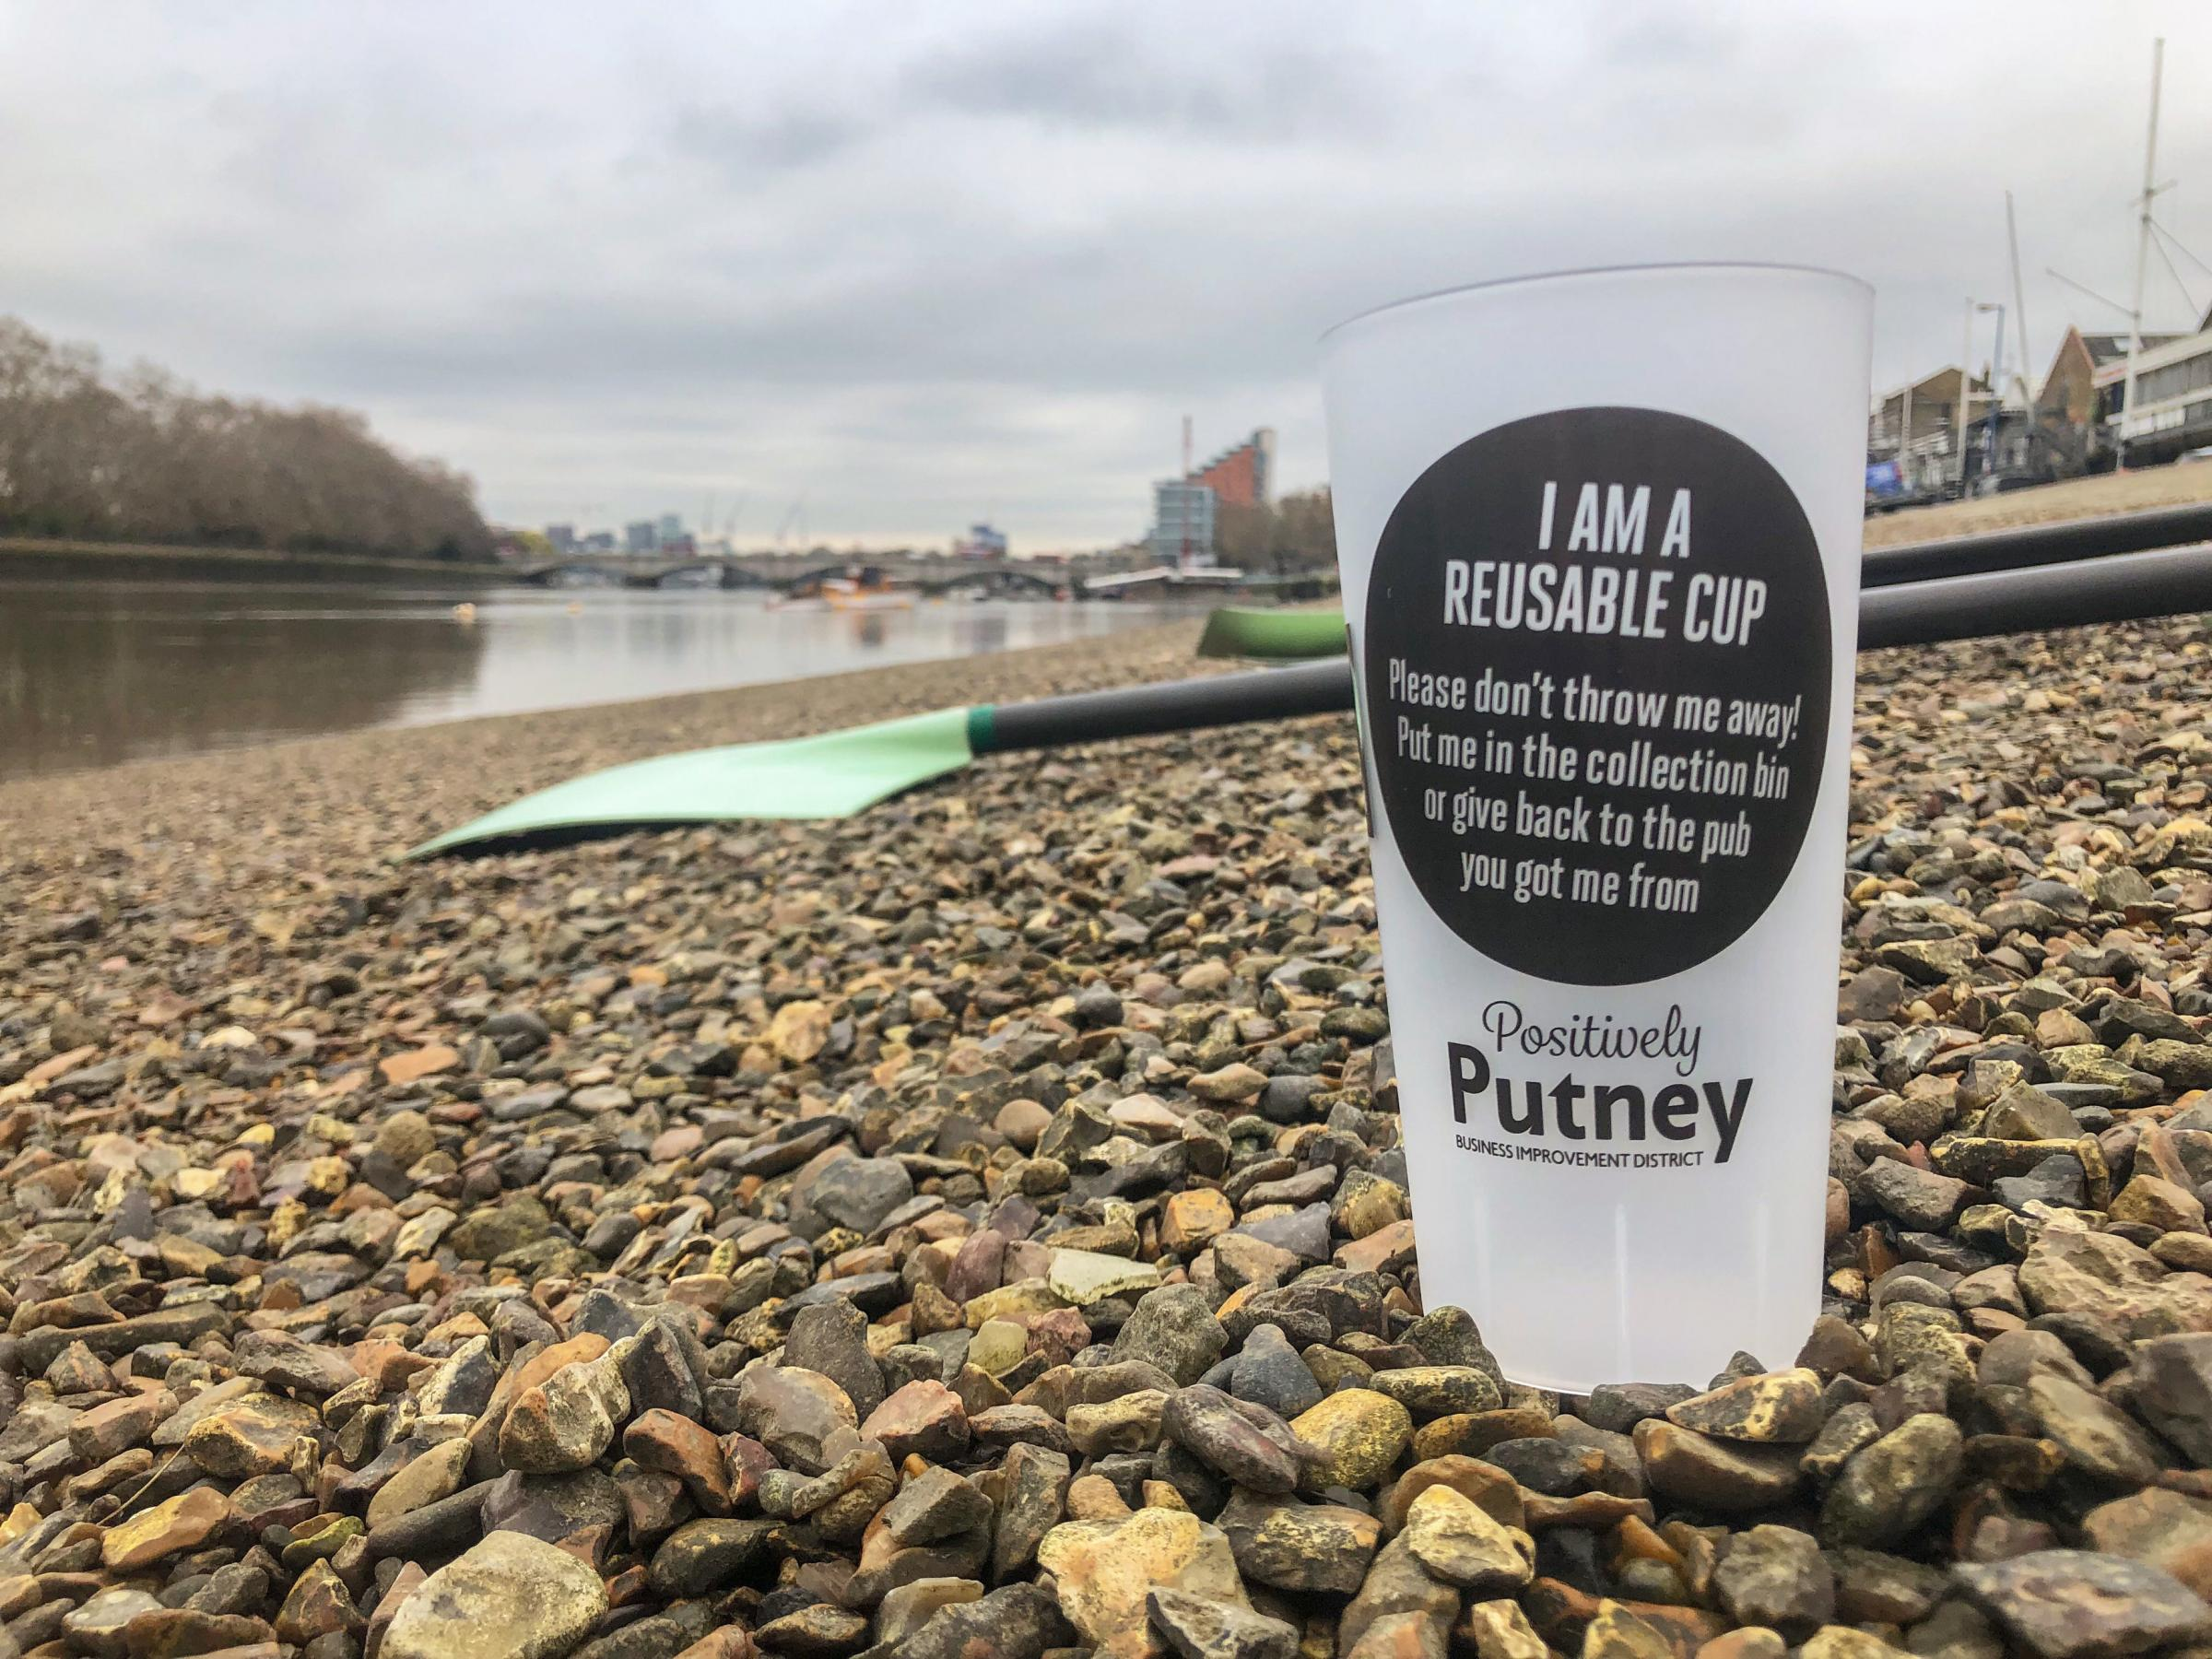 Some 14,000 reusable cups have been ordered and will be used by eight pubs along the river